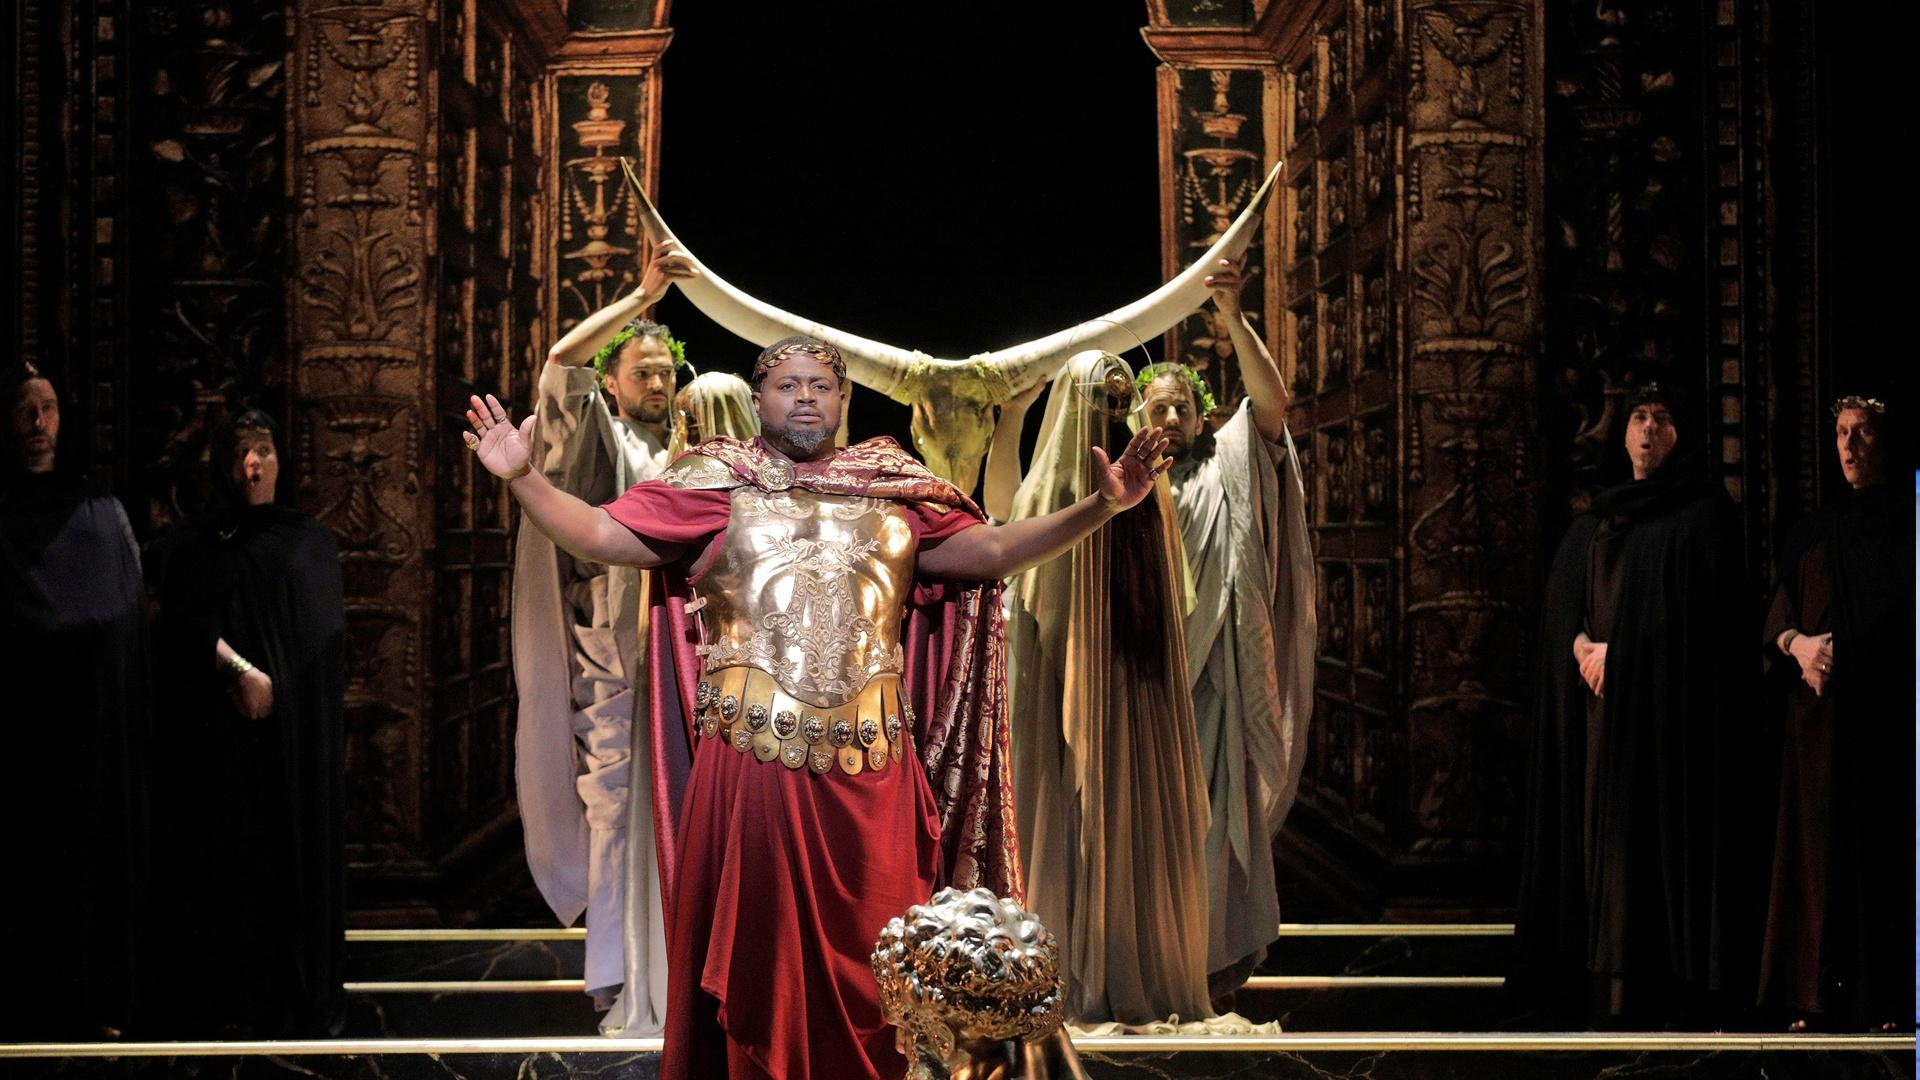 LA Opera's production of The Clemency of Titus. Credit: Cory Weaver